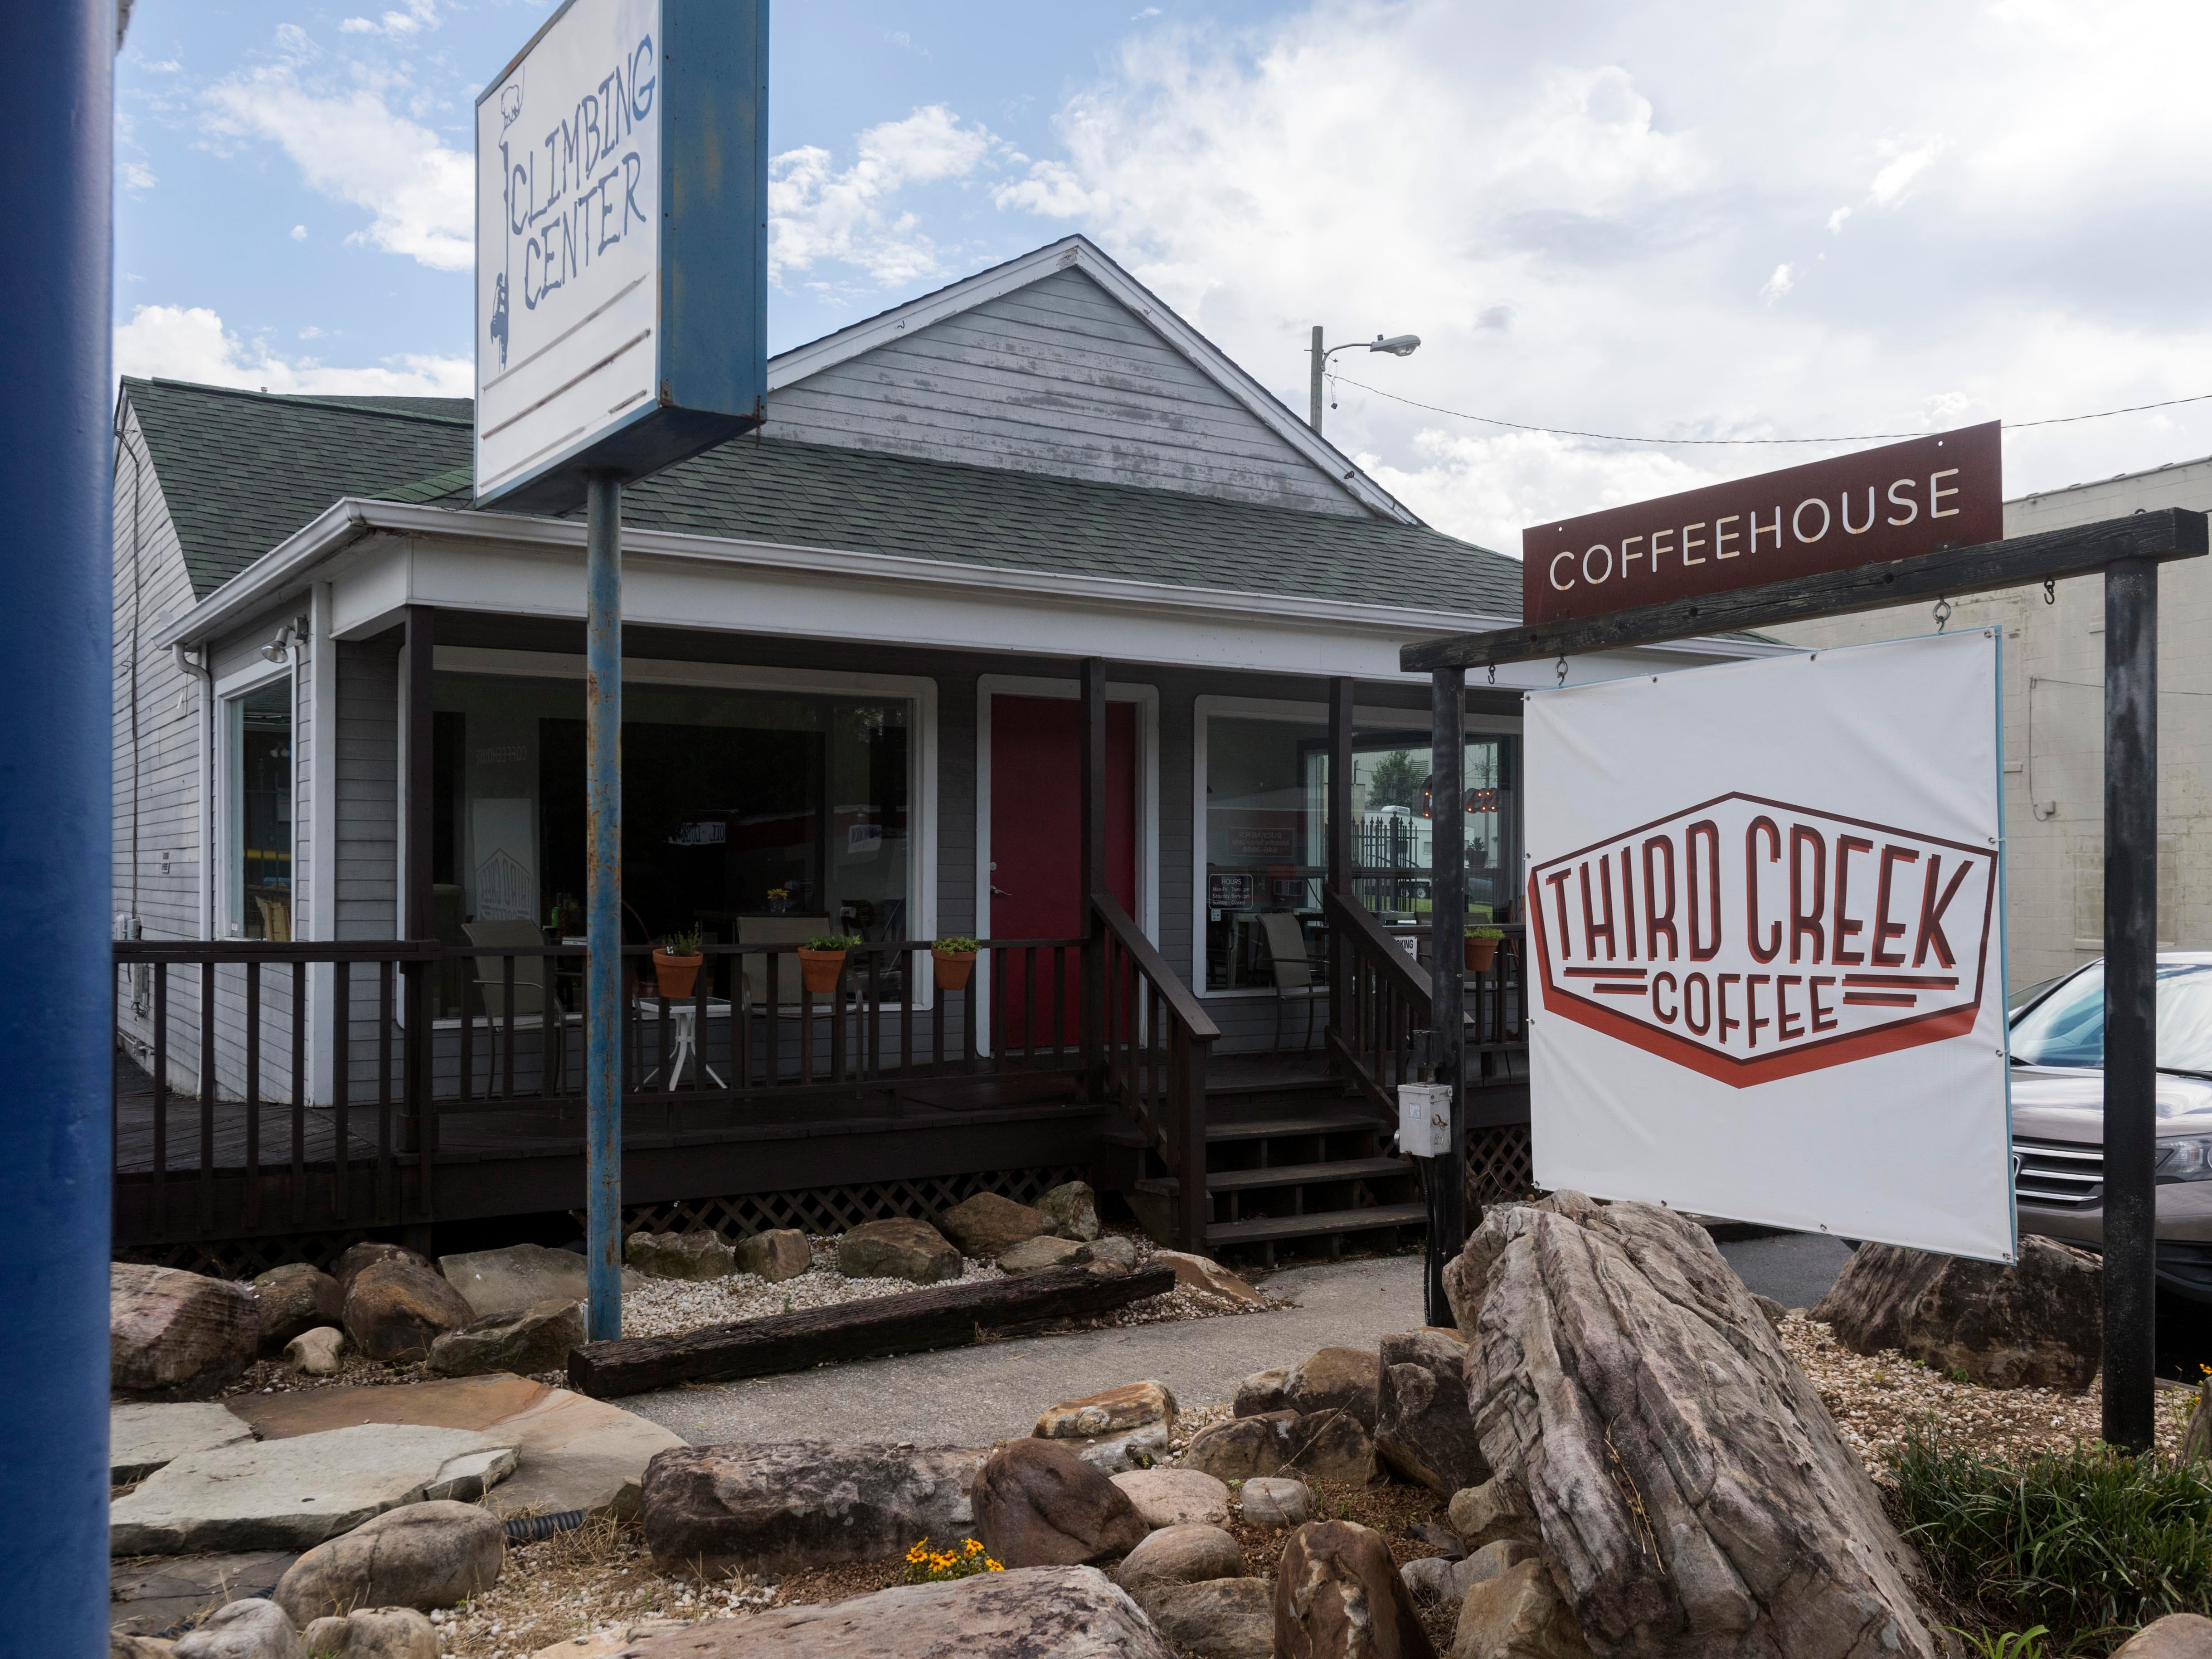 Third Creek Coffee at 2920 Sutherland Ave. on Saturday, September 1, 2018.